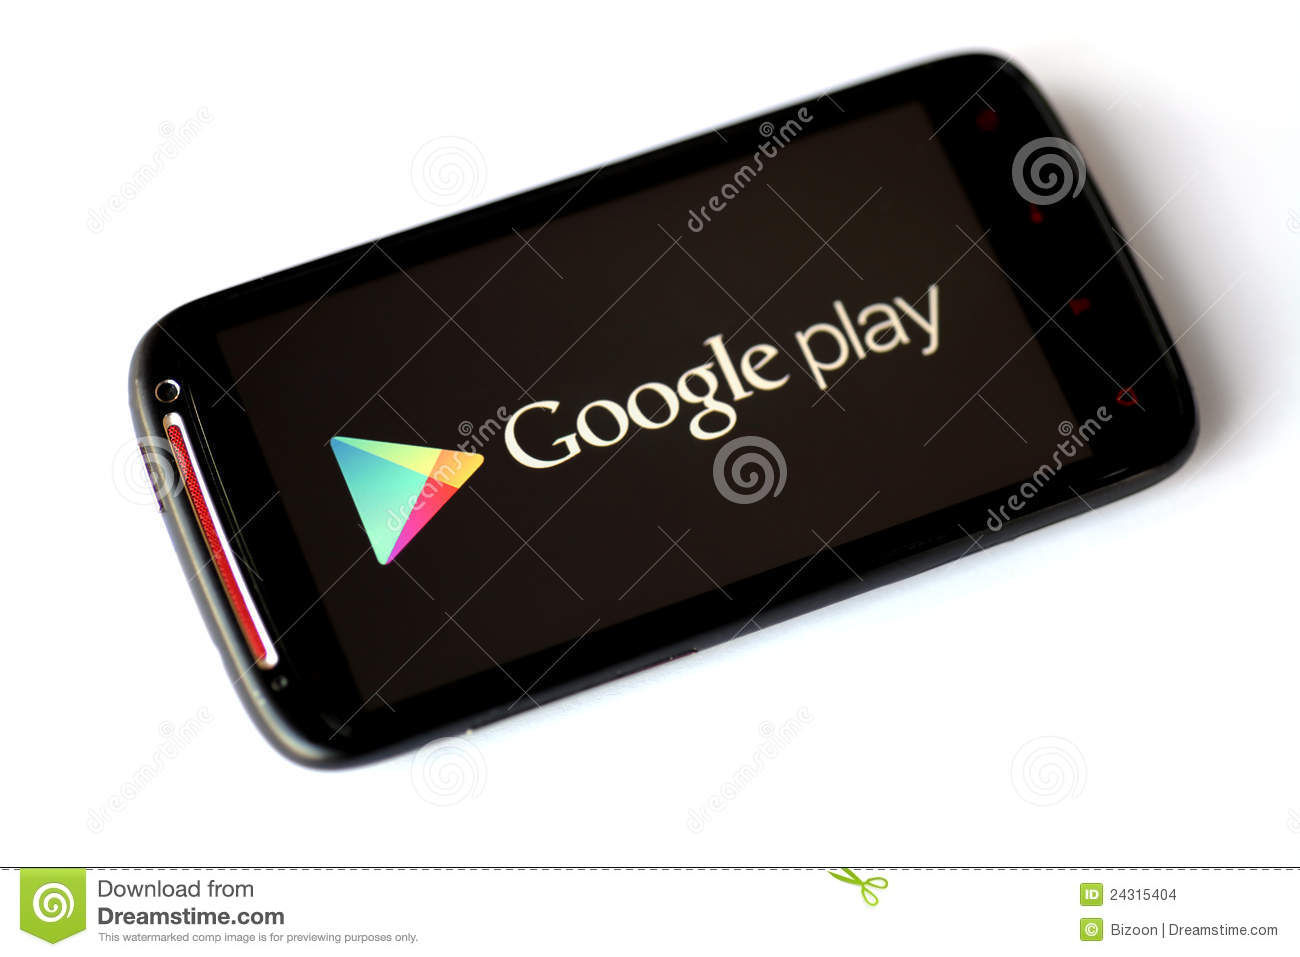 Google Play phone